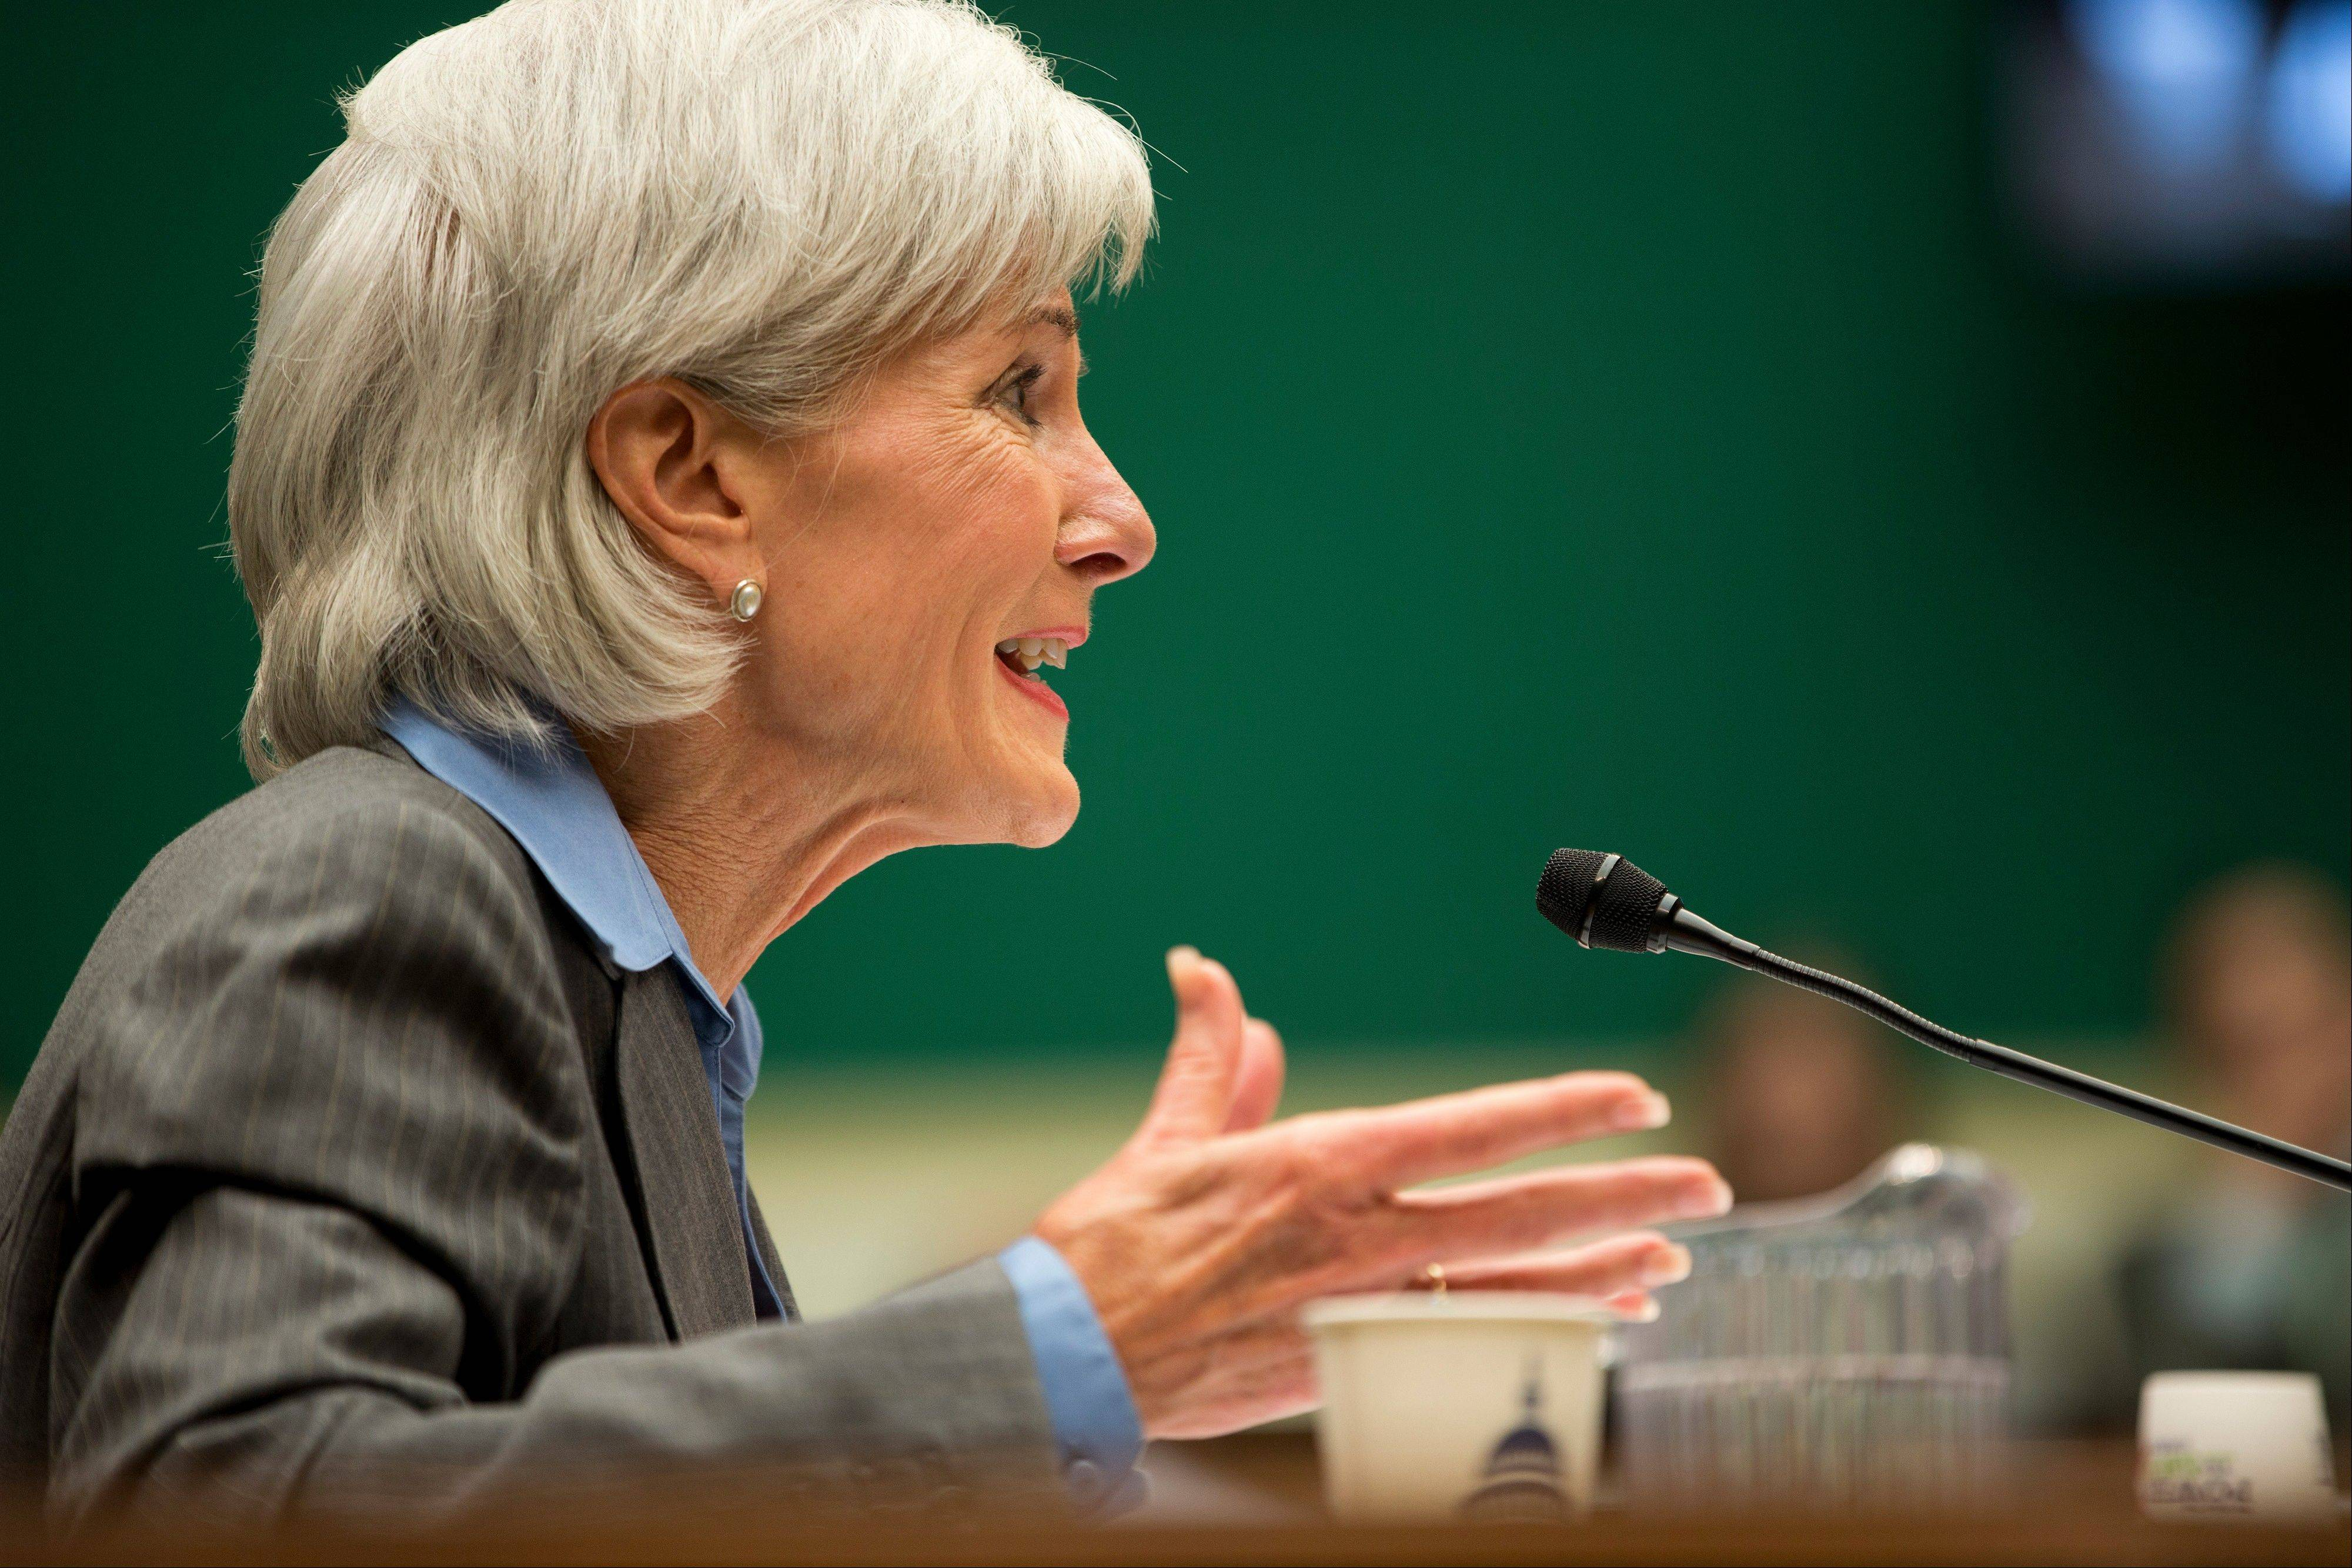 Health and Human Services Secretary Kathleen Sebelius testifies Wednesday on Capitol Hill in Washington, before the House Energy and Commerce Committee, on the difficulties plaguing the implementation of the Affordable Care Act.